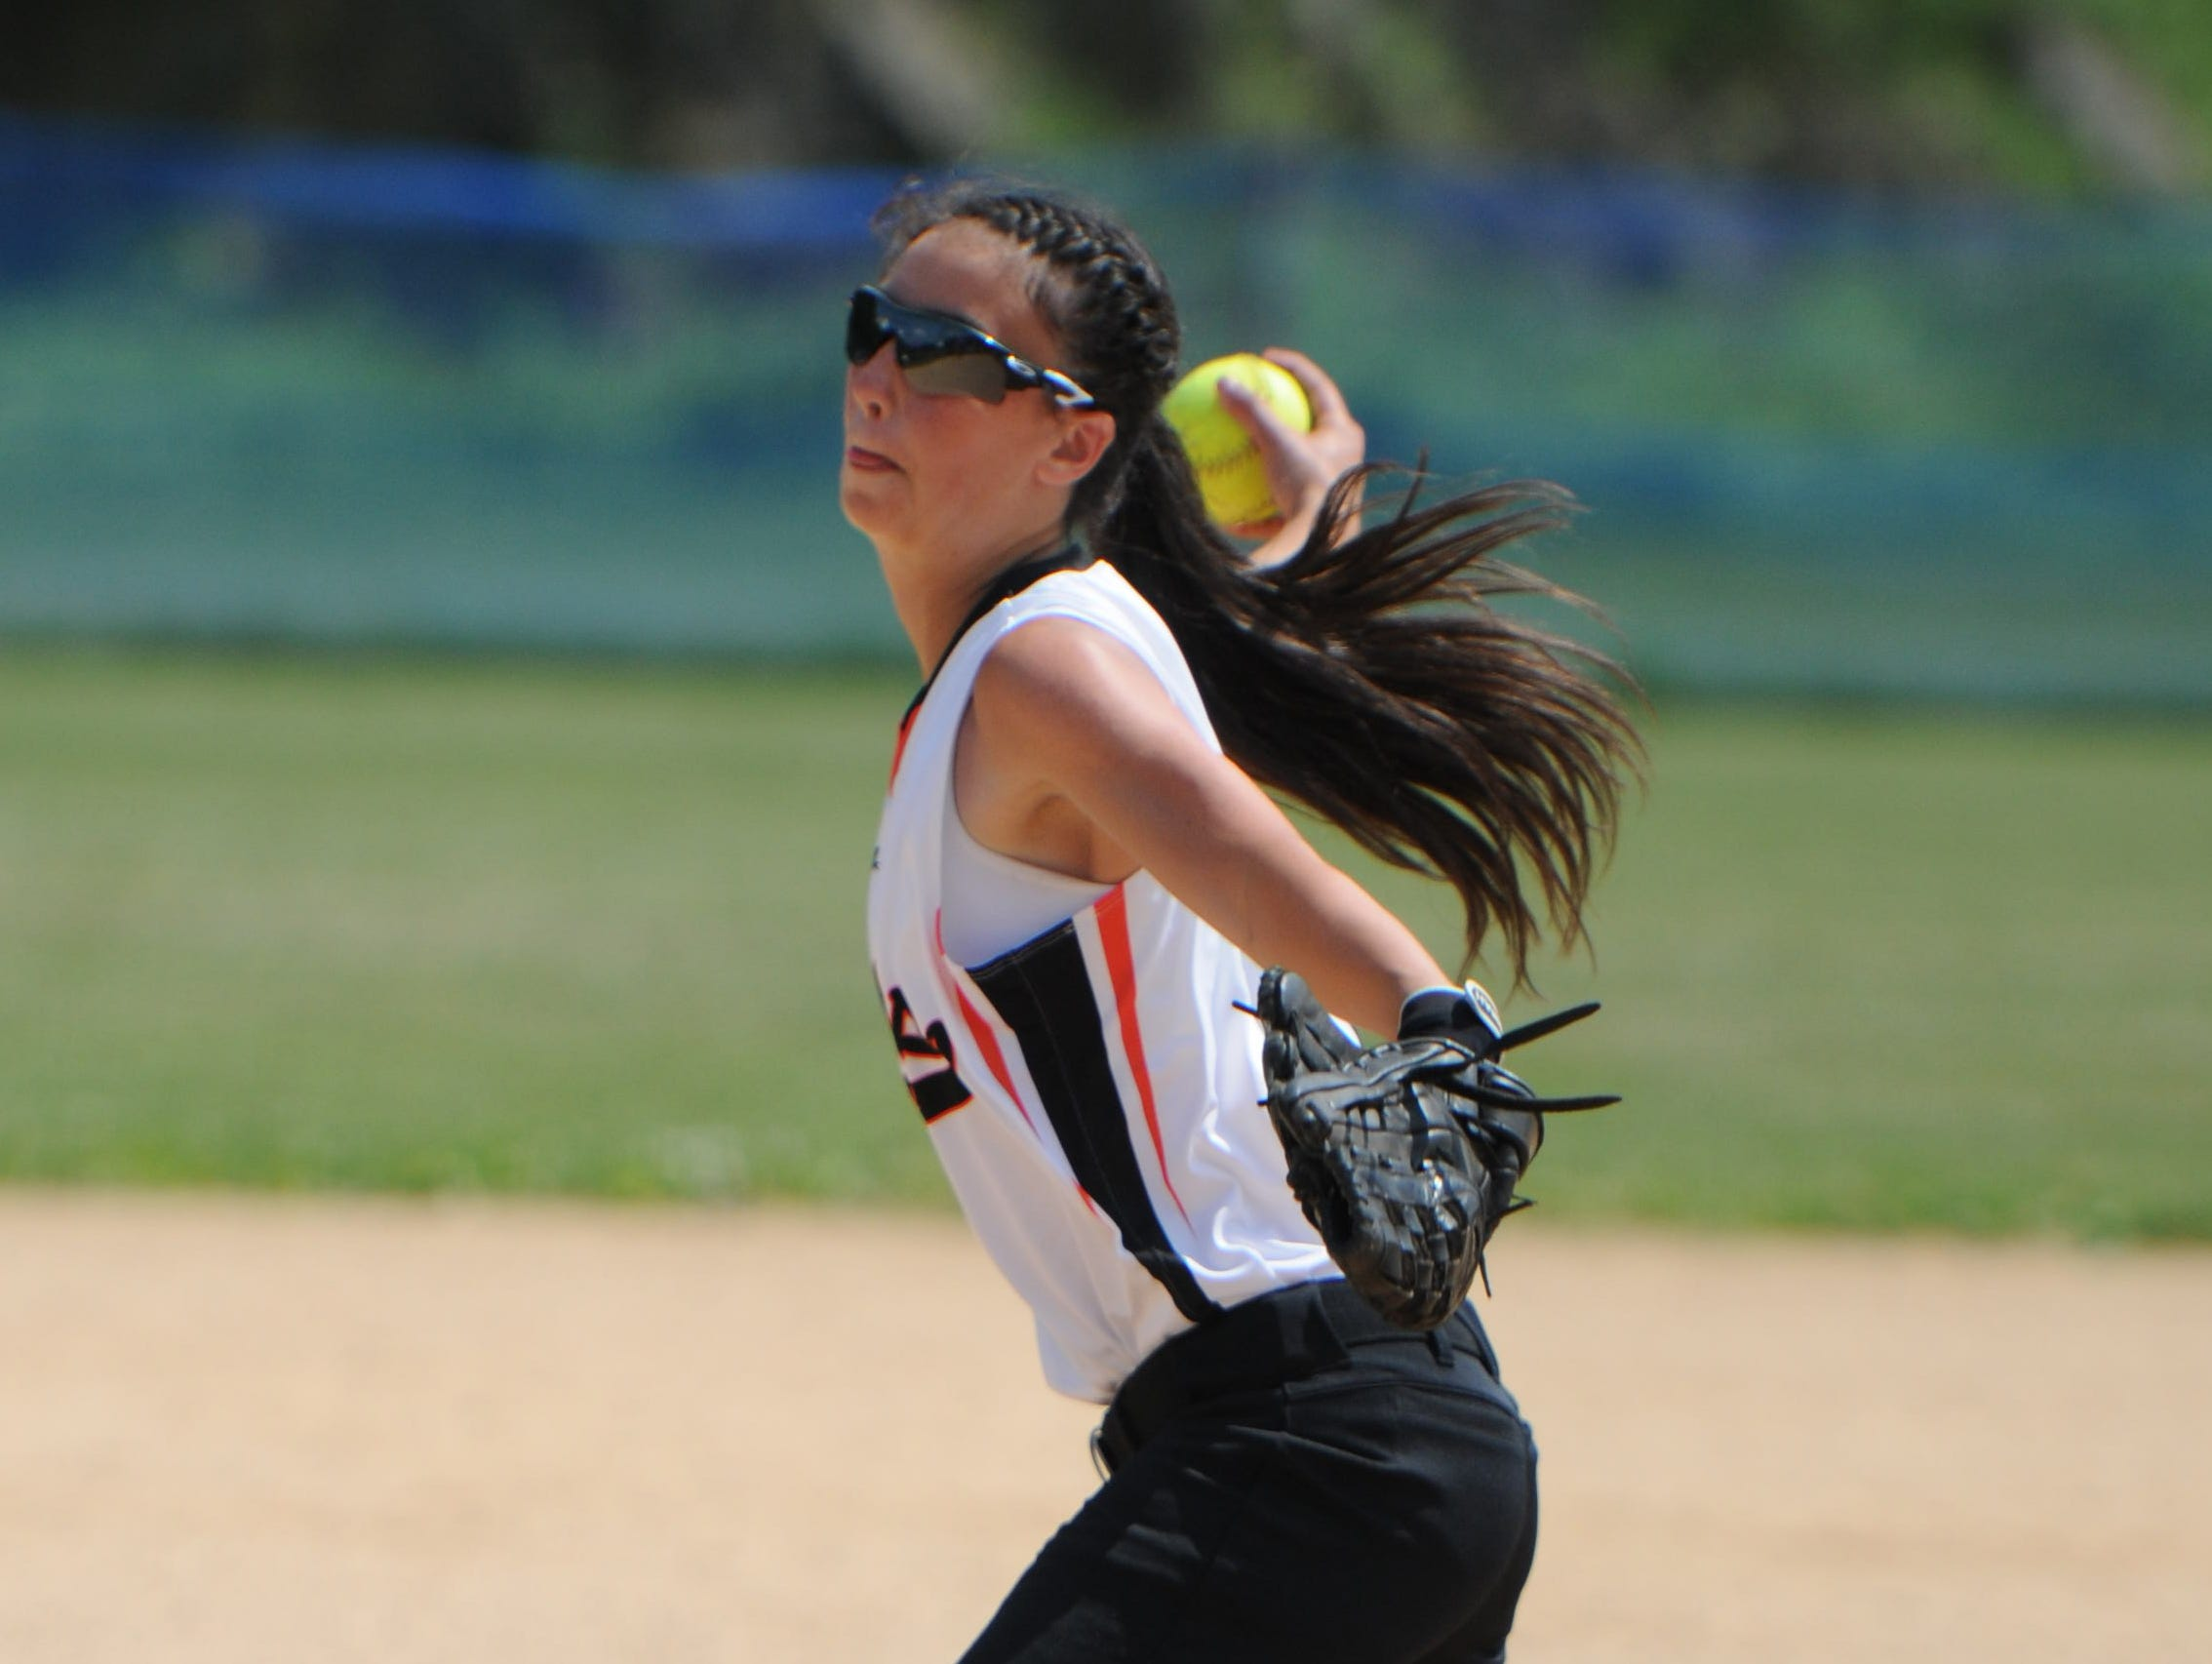 Marlboro High School's Taylor Felicello pitches during the Section 9 Class B final against Ellenville in Rhinebeck on Saturday.